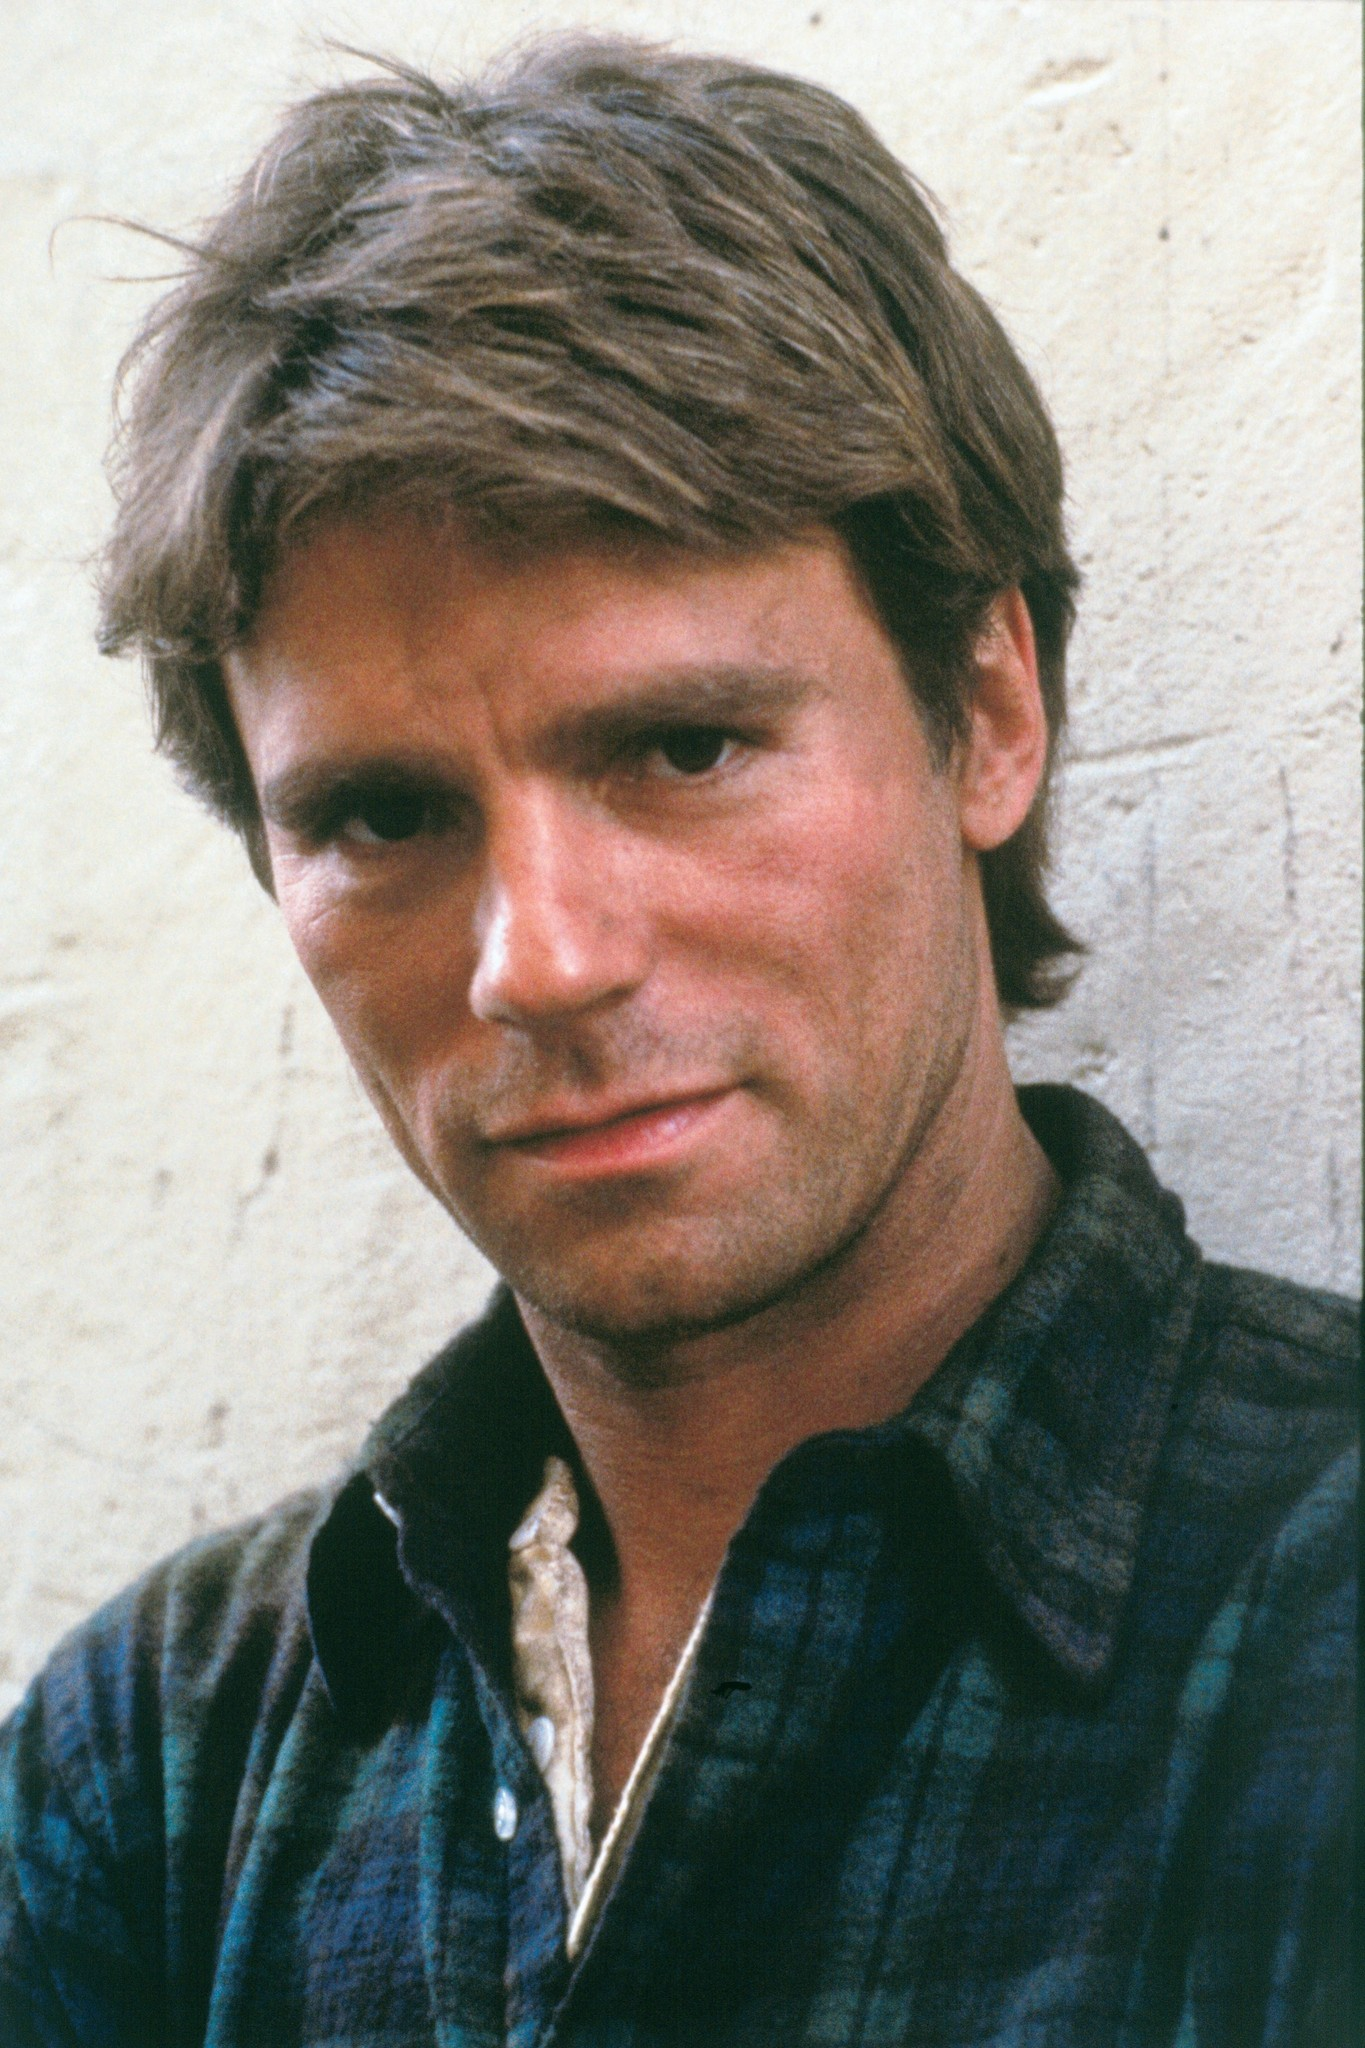 A still of Richard Anderson in his role of Angus MacGyver. He is wearing a green shirt